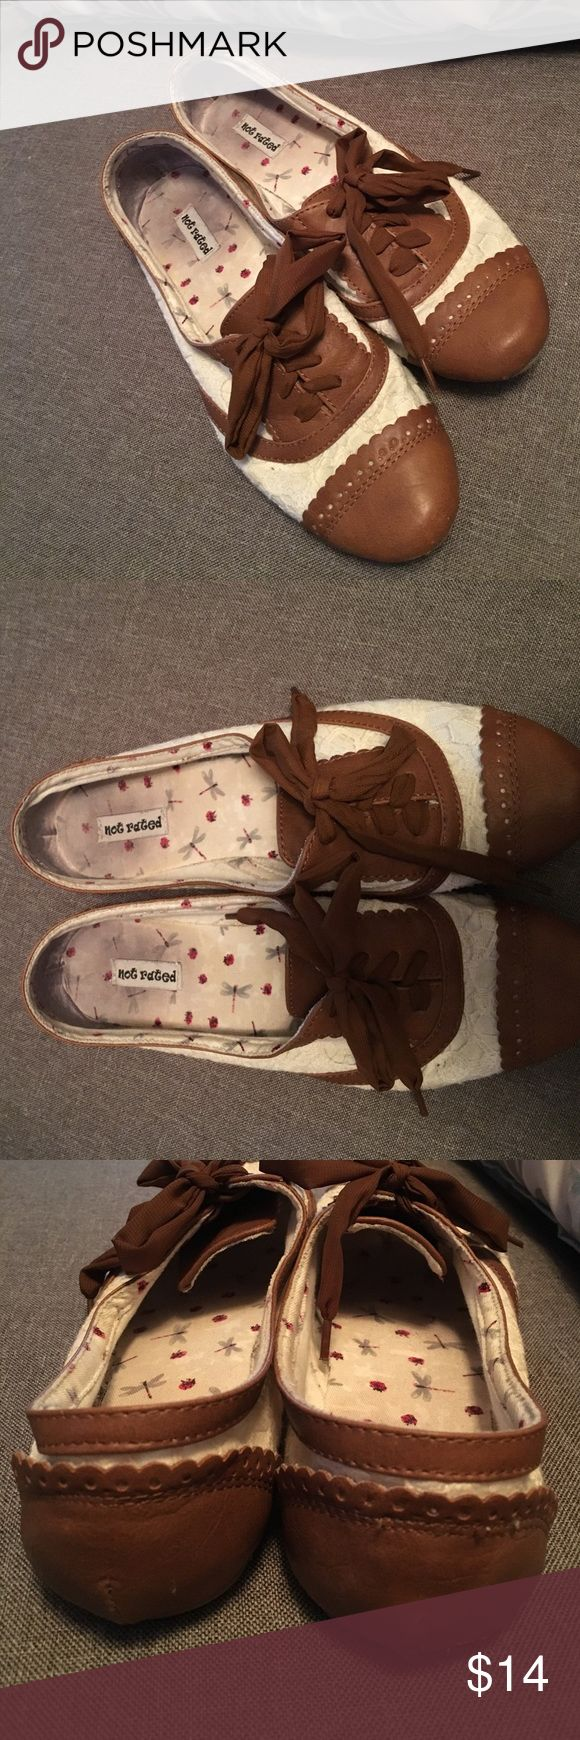 Not Rated Lace and Leather Oxfords Not Rated Lace and Leather Oxfords in Great Condition and Super Comfy! Not Rated Shoes